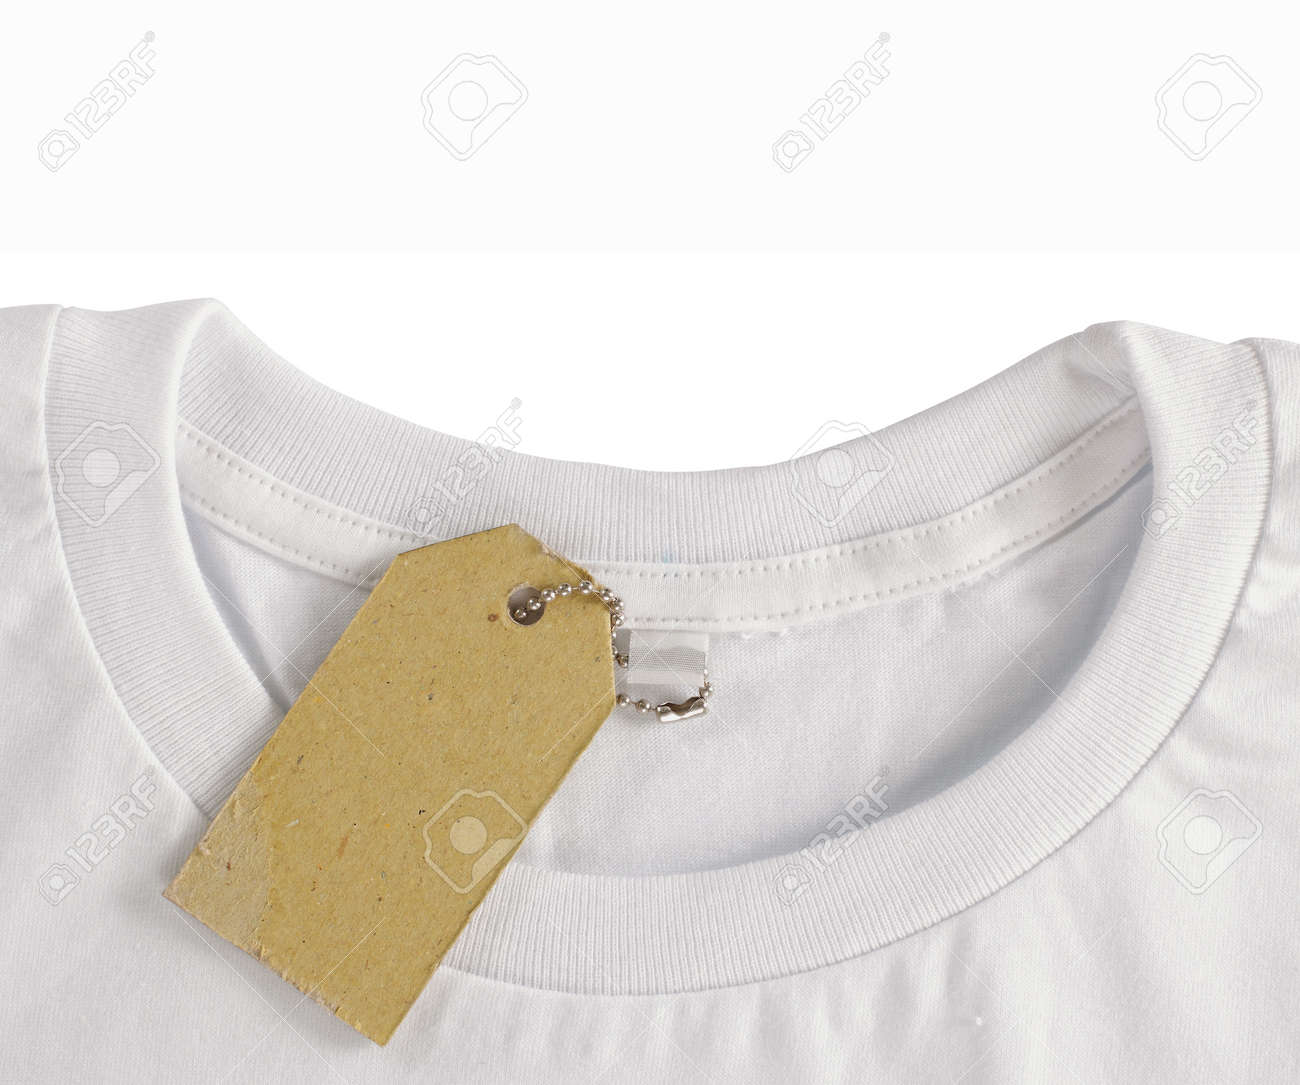 blank price tag hang over white tshirt. isolated over white background Standard-Bild - 9469653